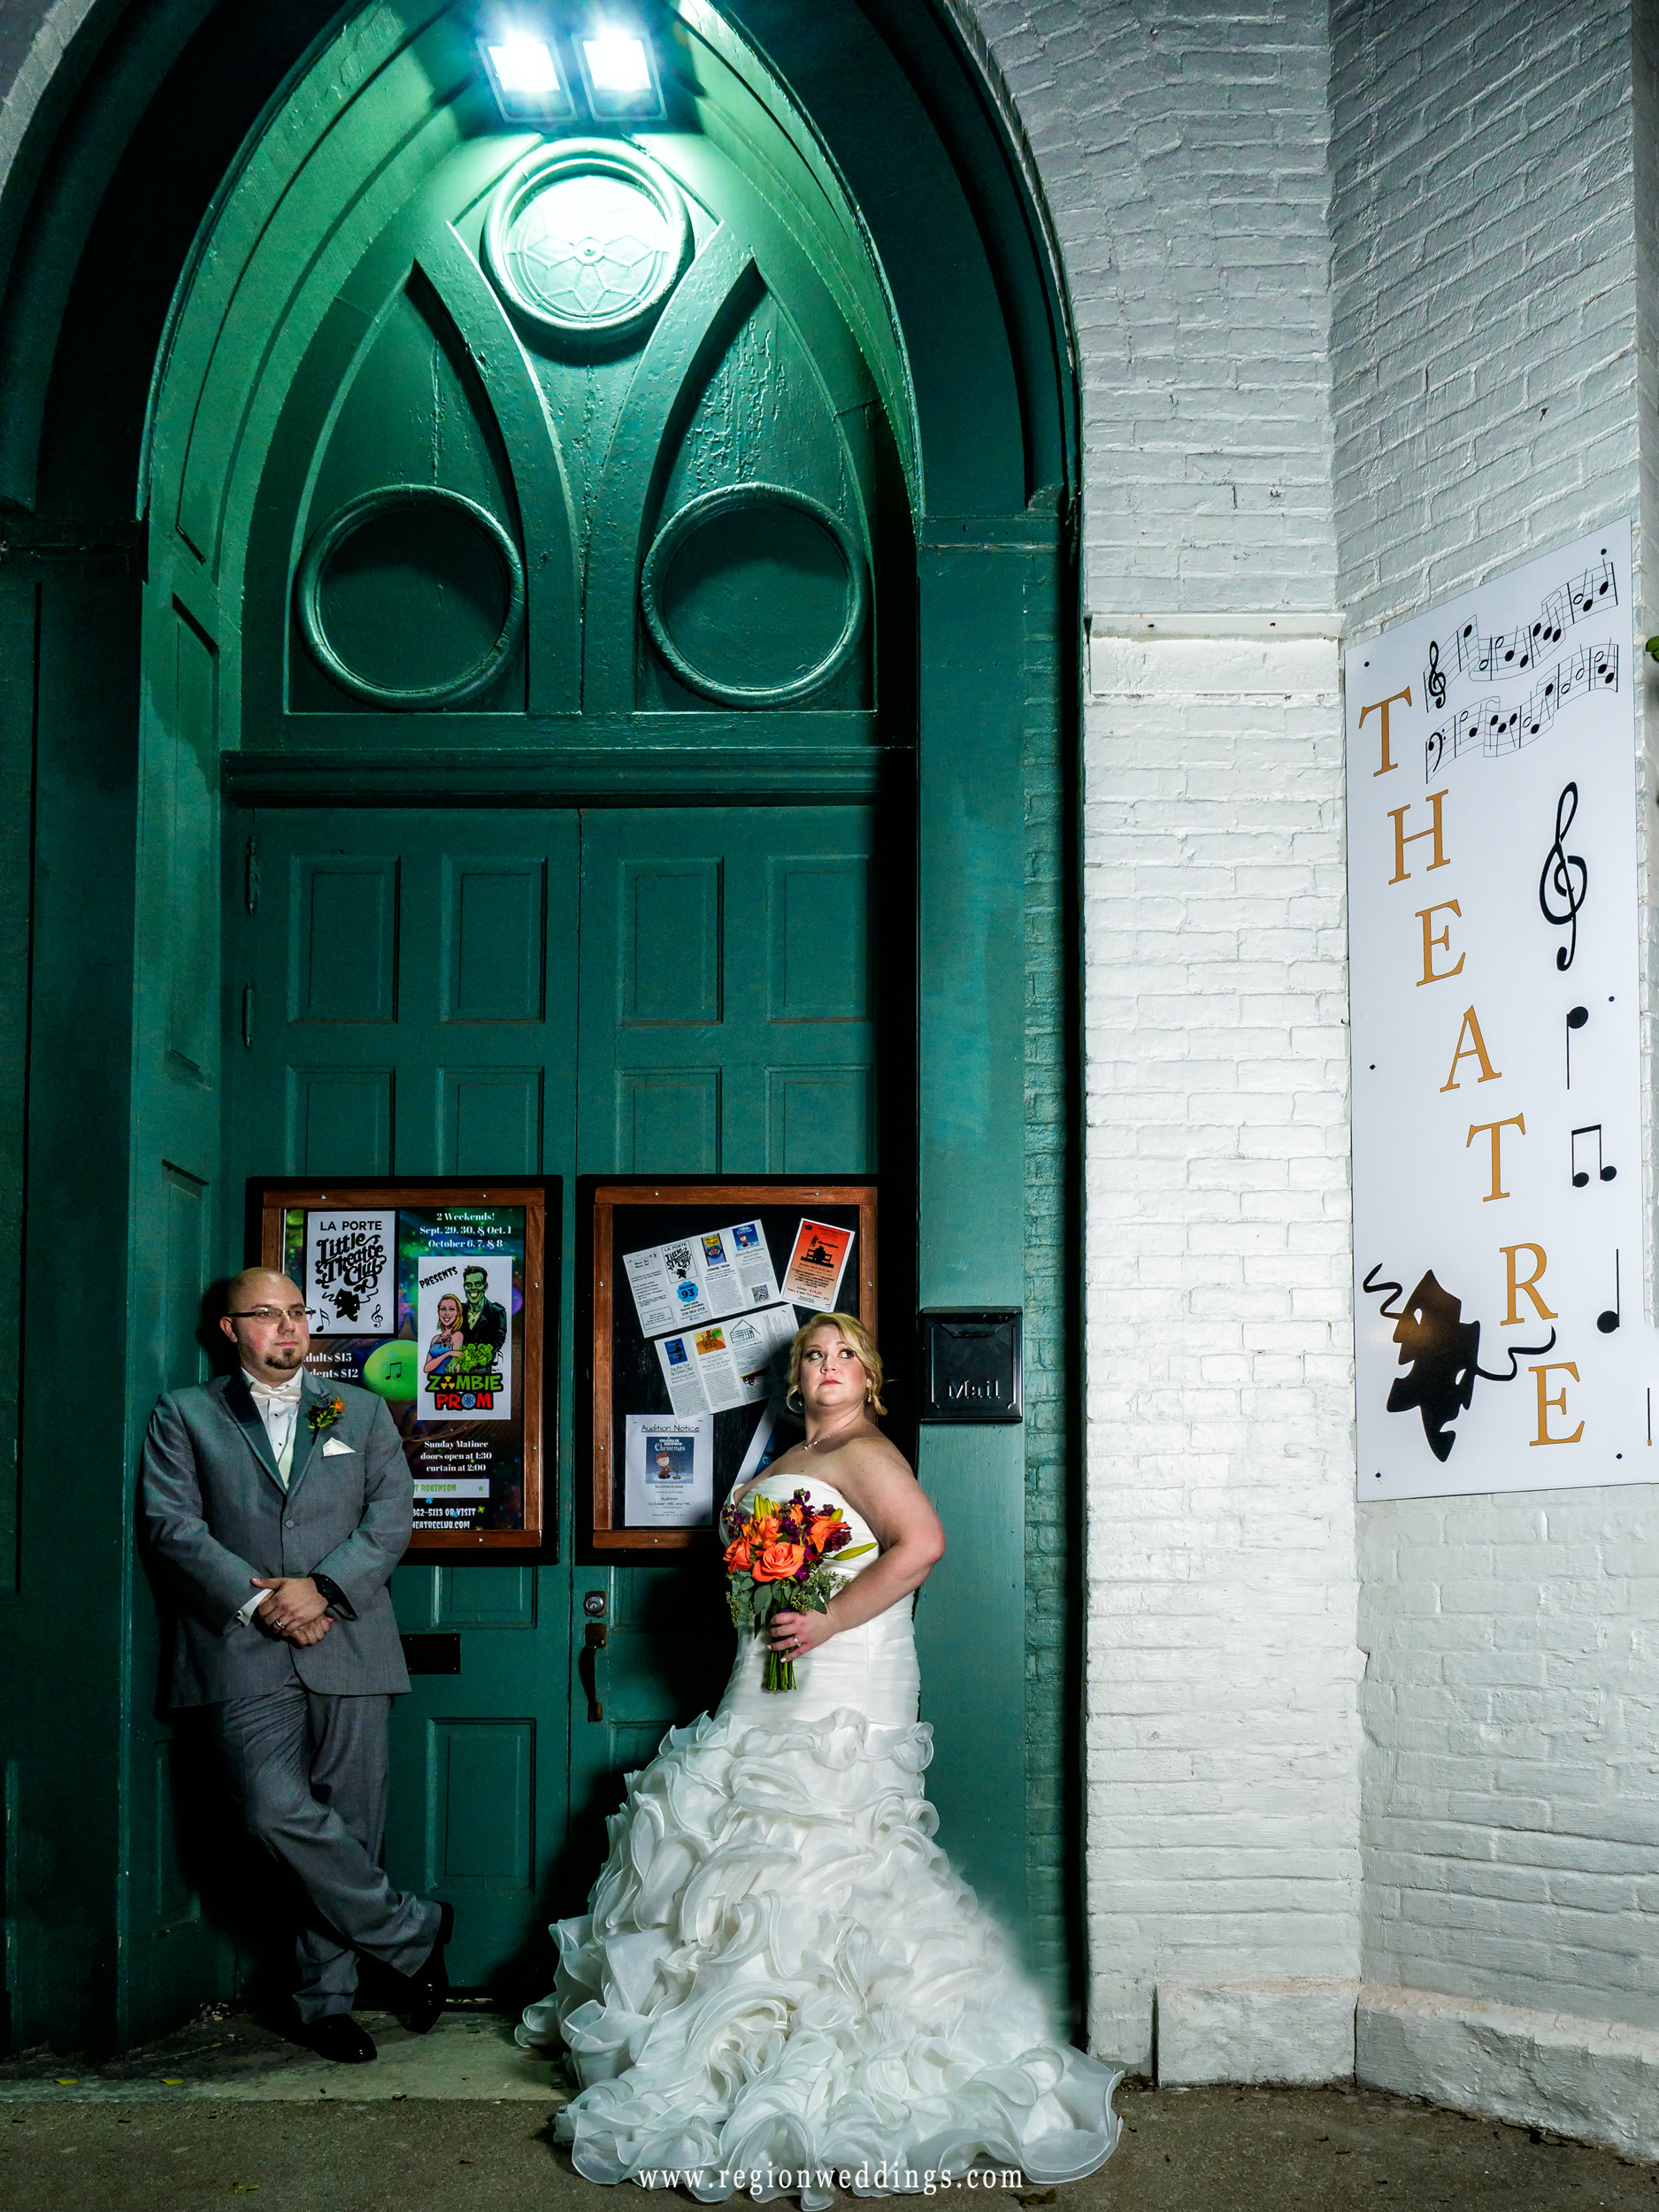 Bride and groom looking rad in front of The Laporte Little Theatre Club.